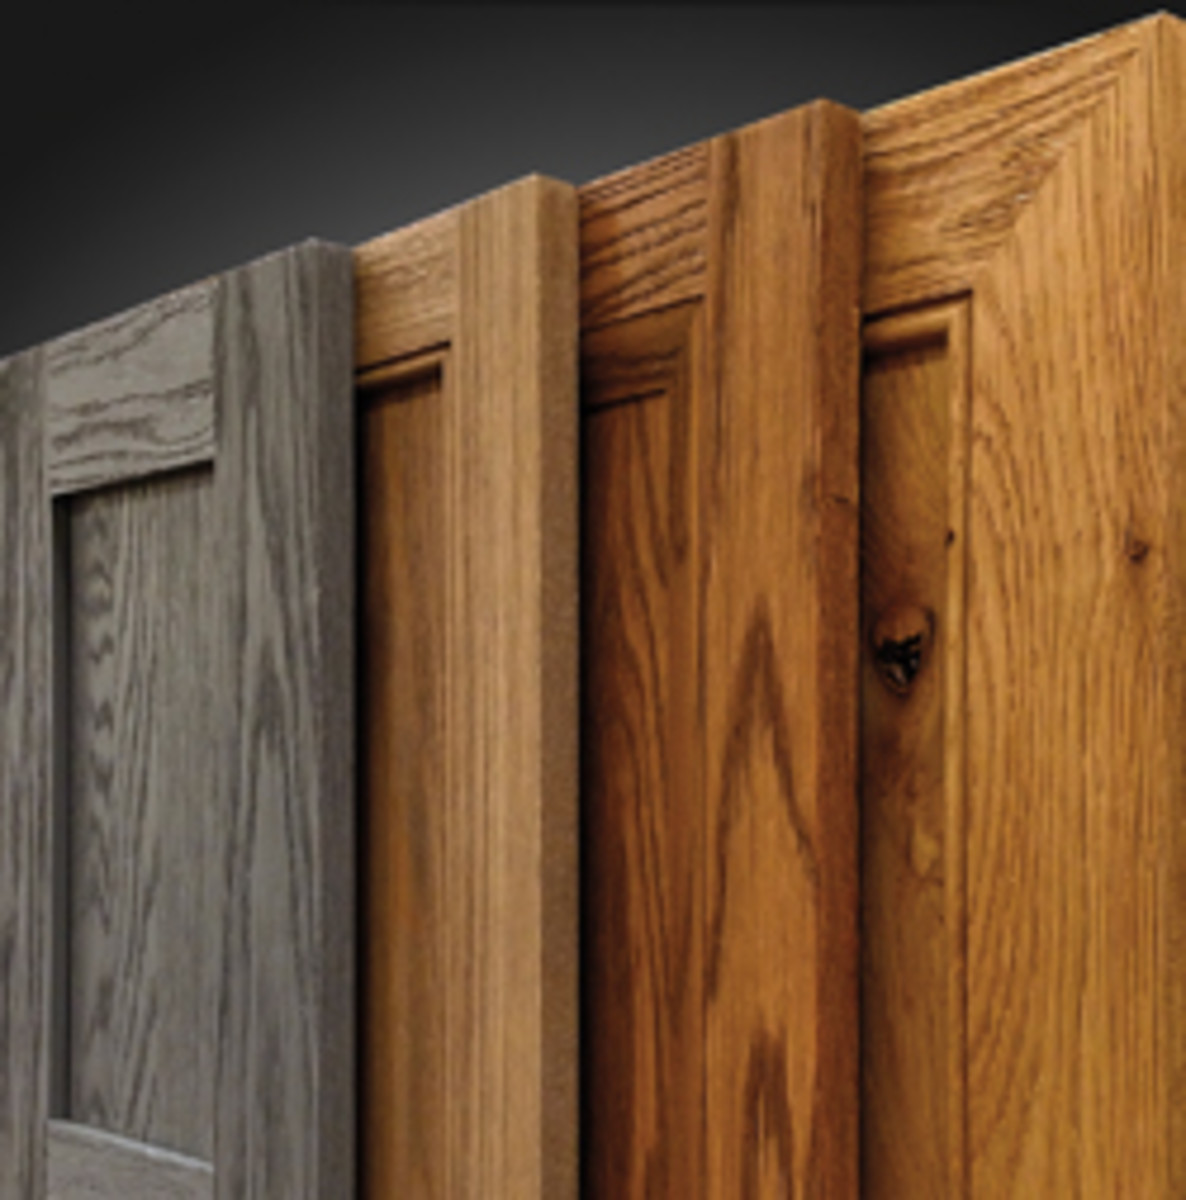 WalzCraft's catalog features more distressed door options.